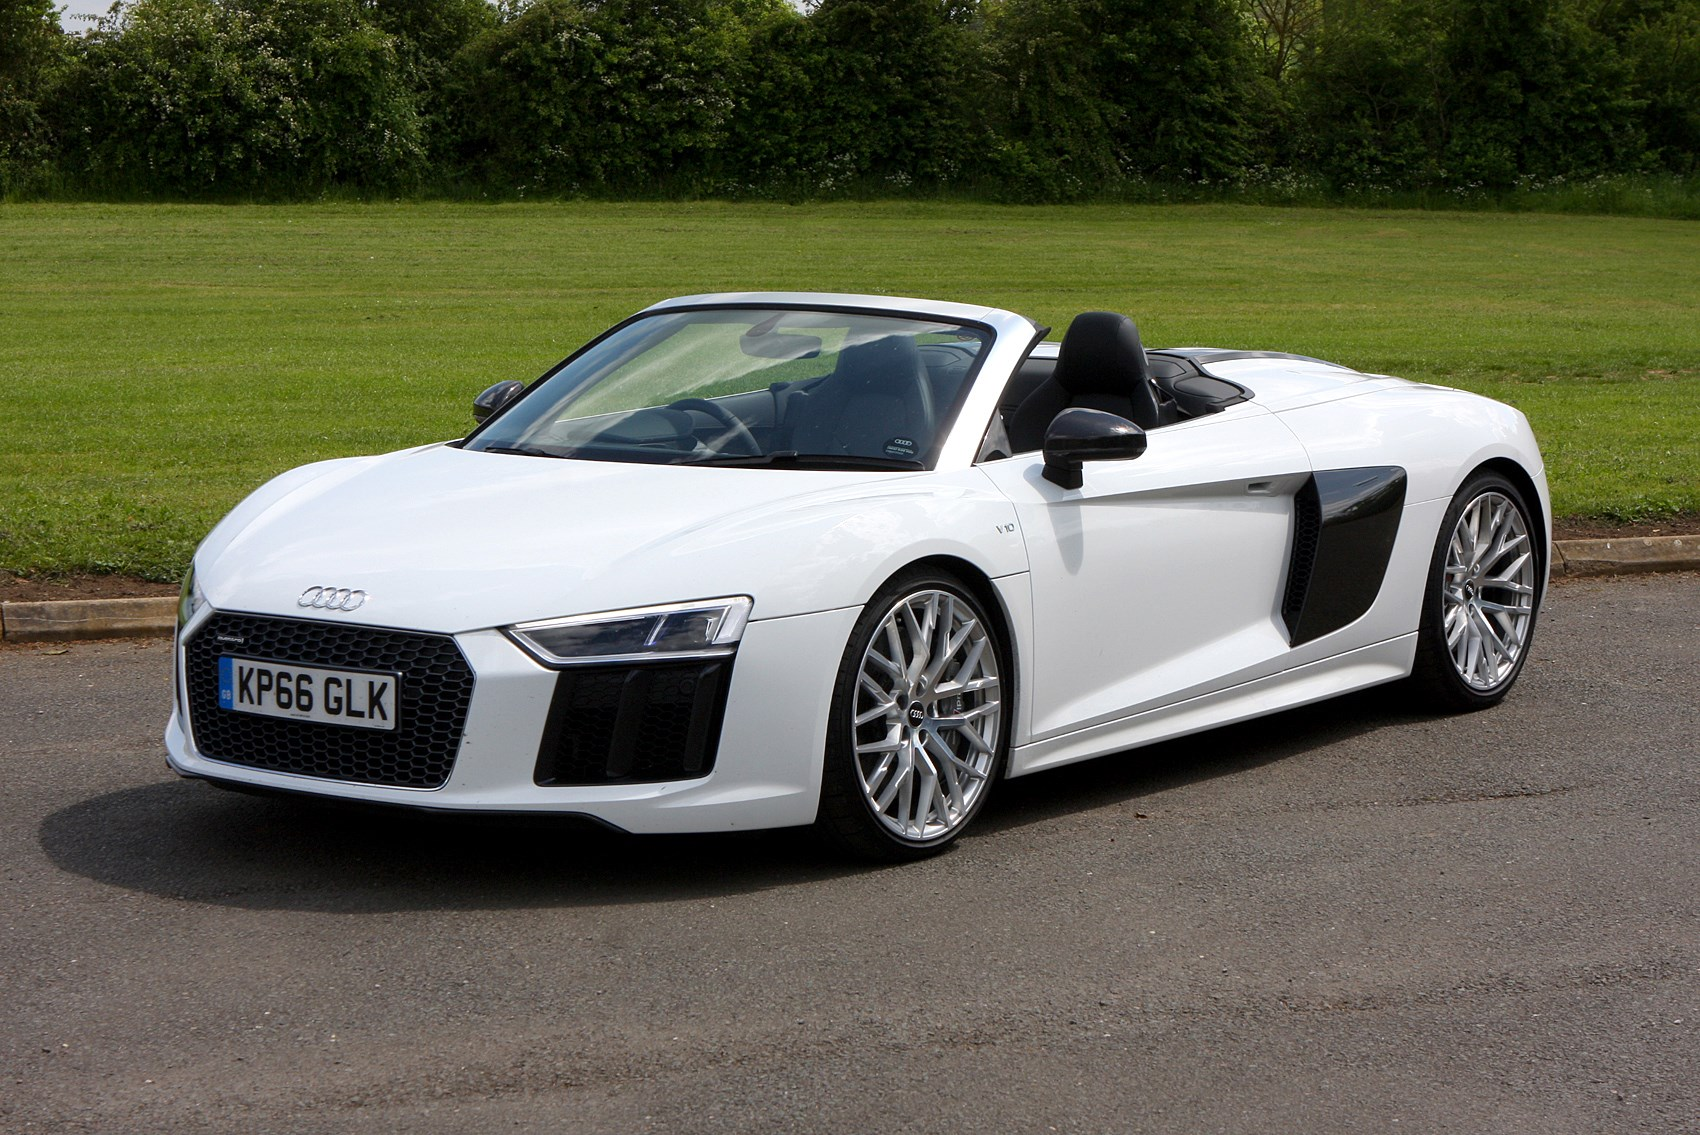 audi r8 spyder 52 rtronic occasion benzin 37 340 km. Black Bedroom Furniture Sets. Home Design Ideas